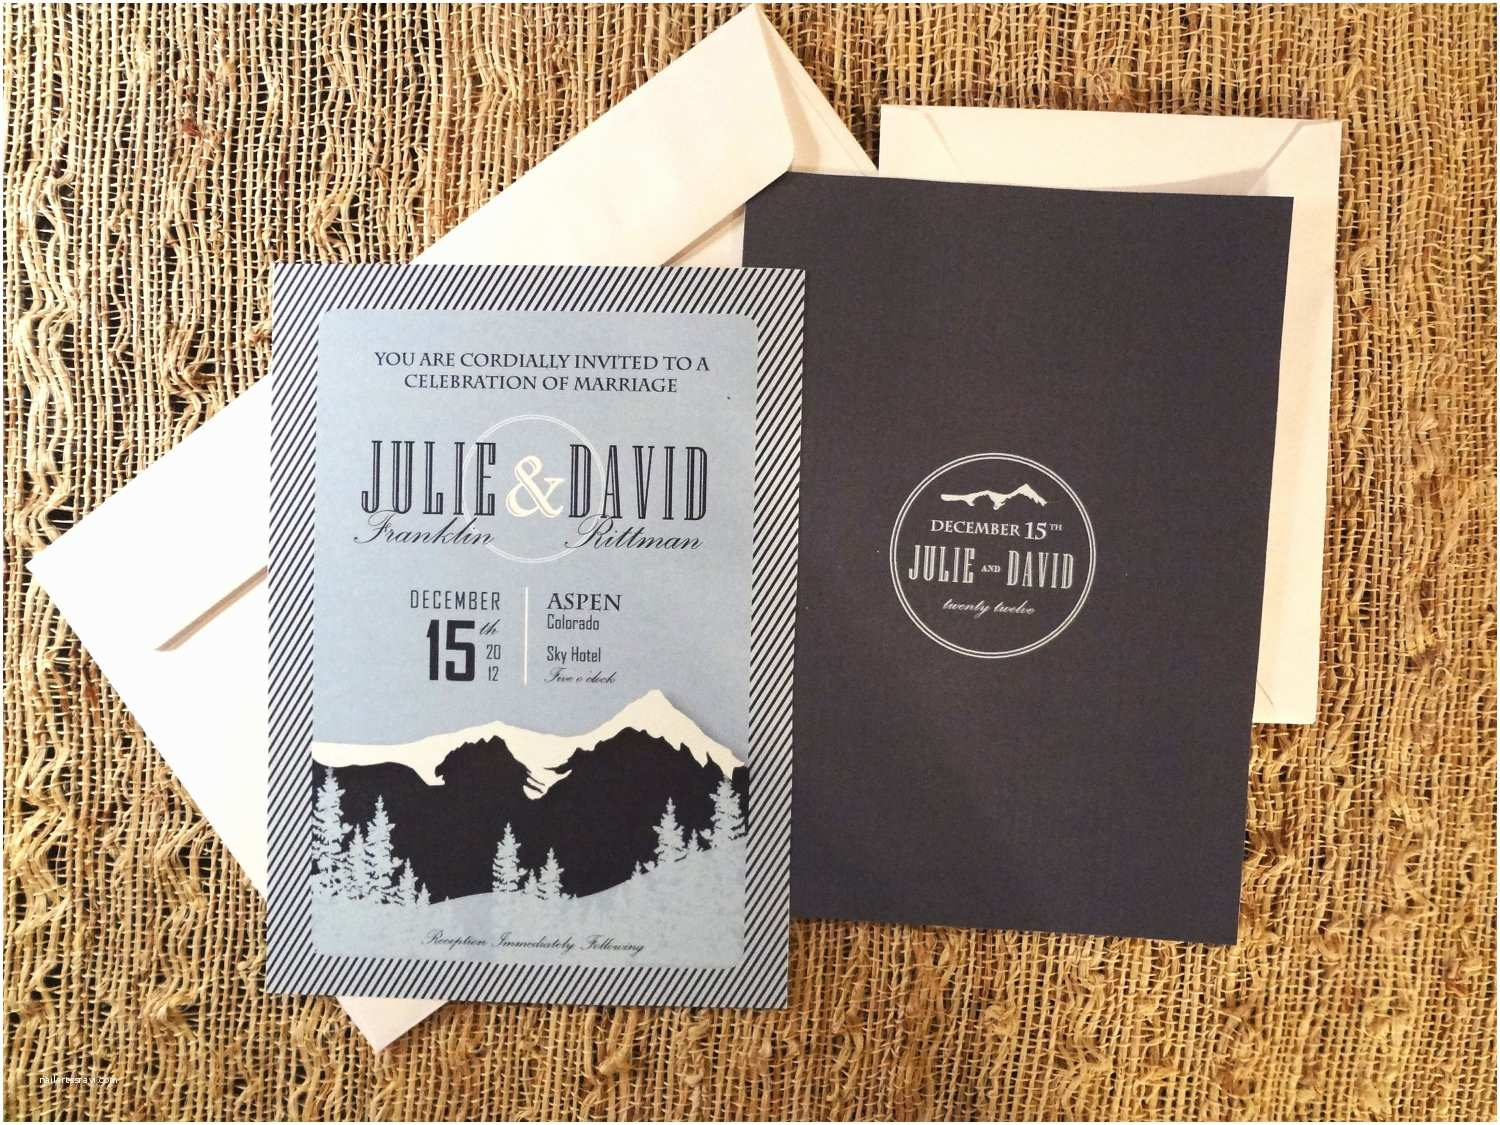 Mountain Wedding Invitations Create Own Mountain Wedding Invitations Designs Ideas